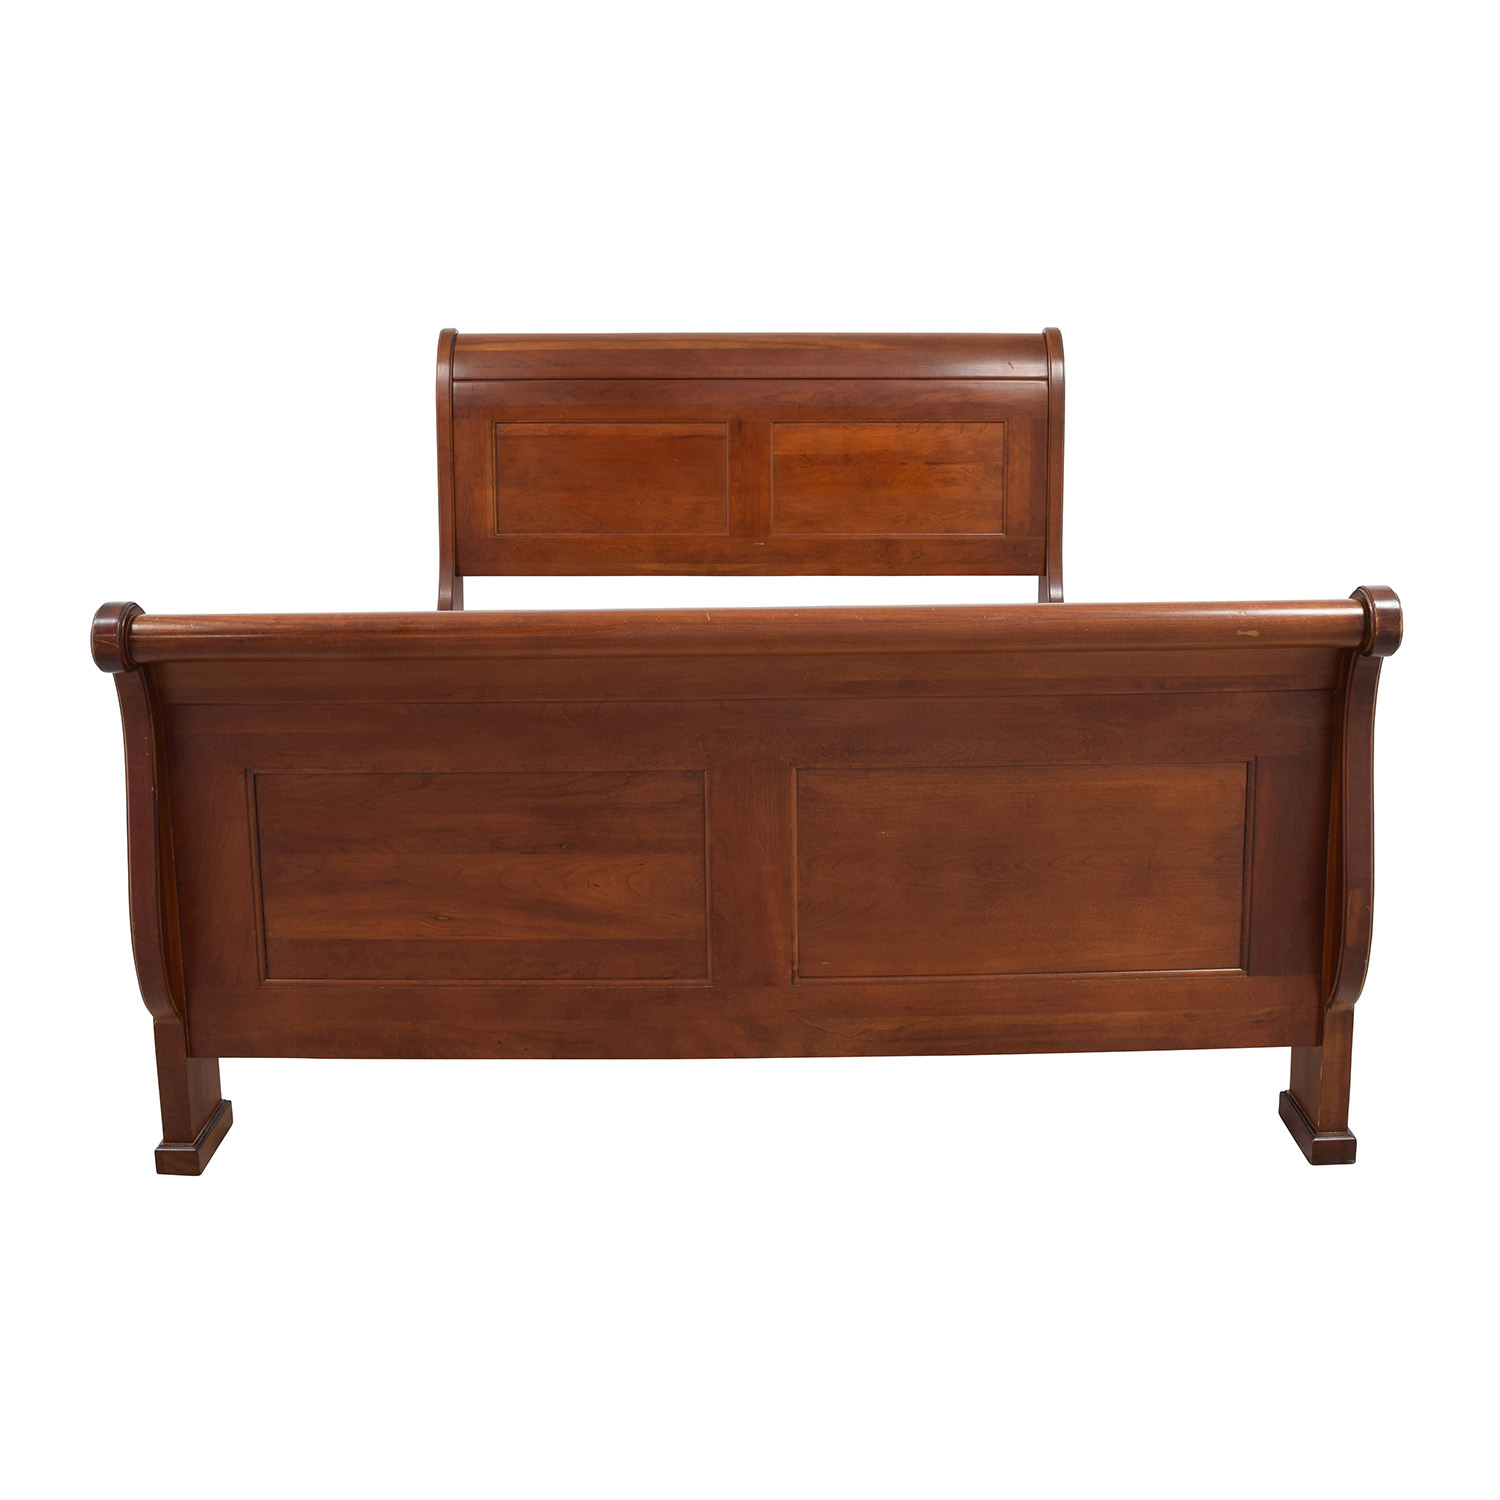 shop Solid Cherry Wood Queen Sleigh Bed online